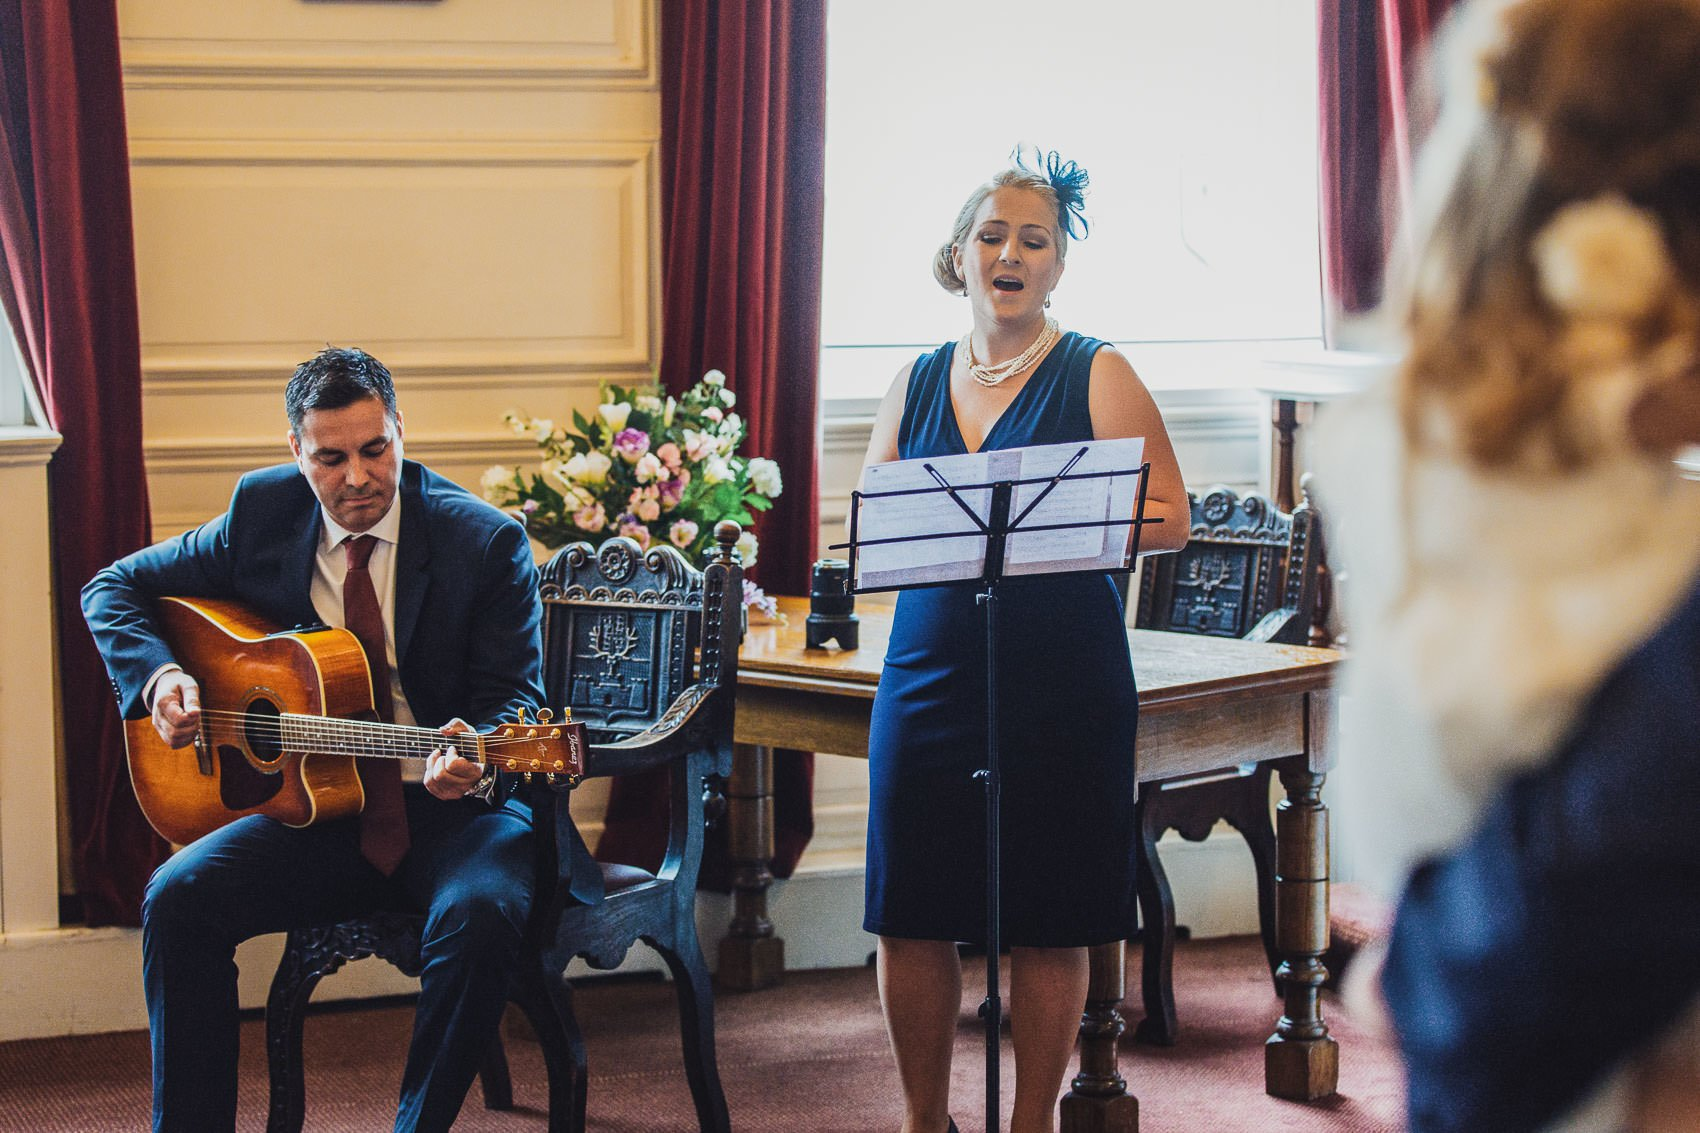 Windsor Guildhall Wedding Photography - Magnus & Tania 19